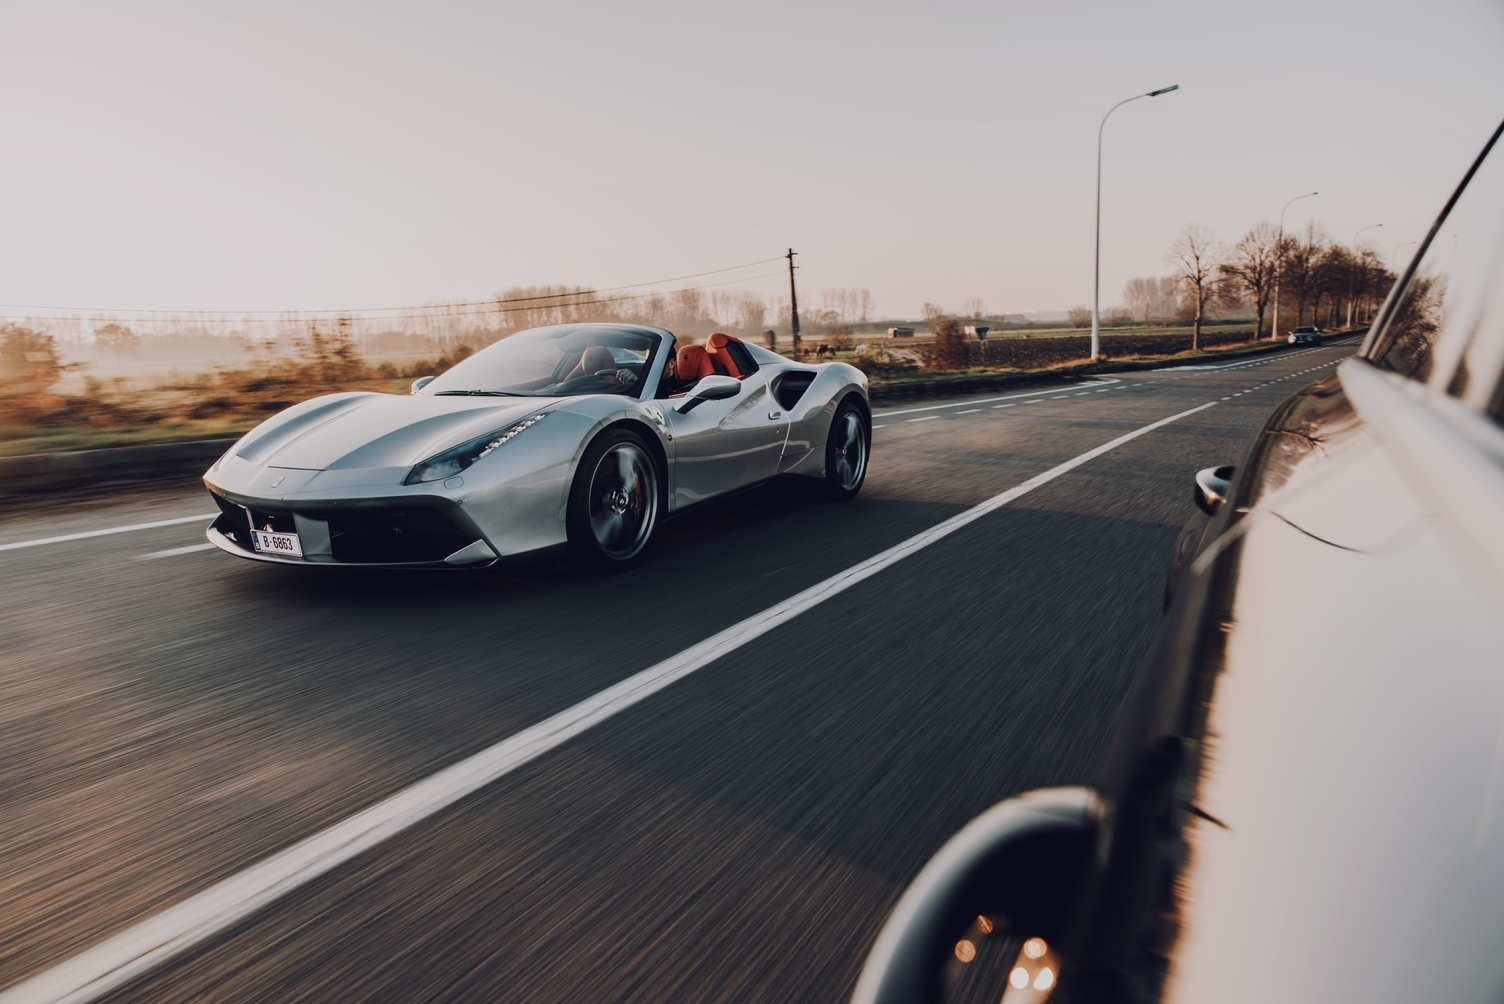 a Ferrari driving on a road representing speed